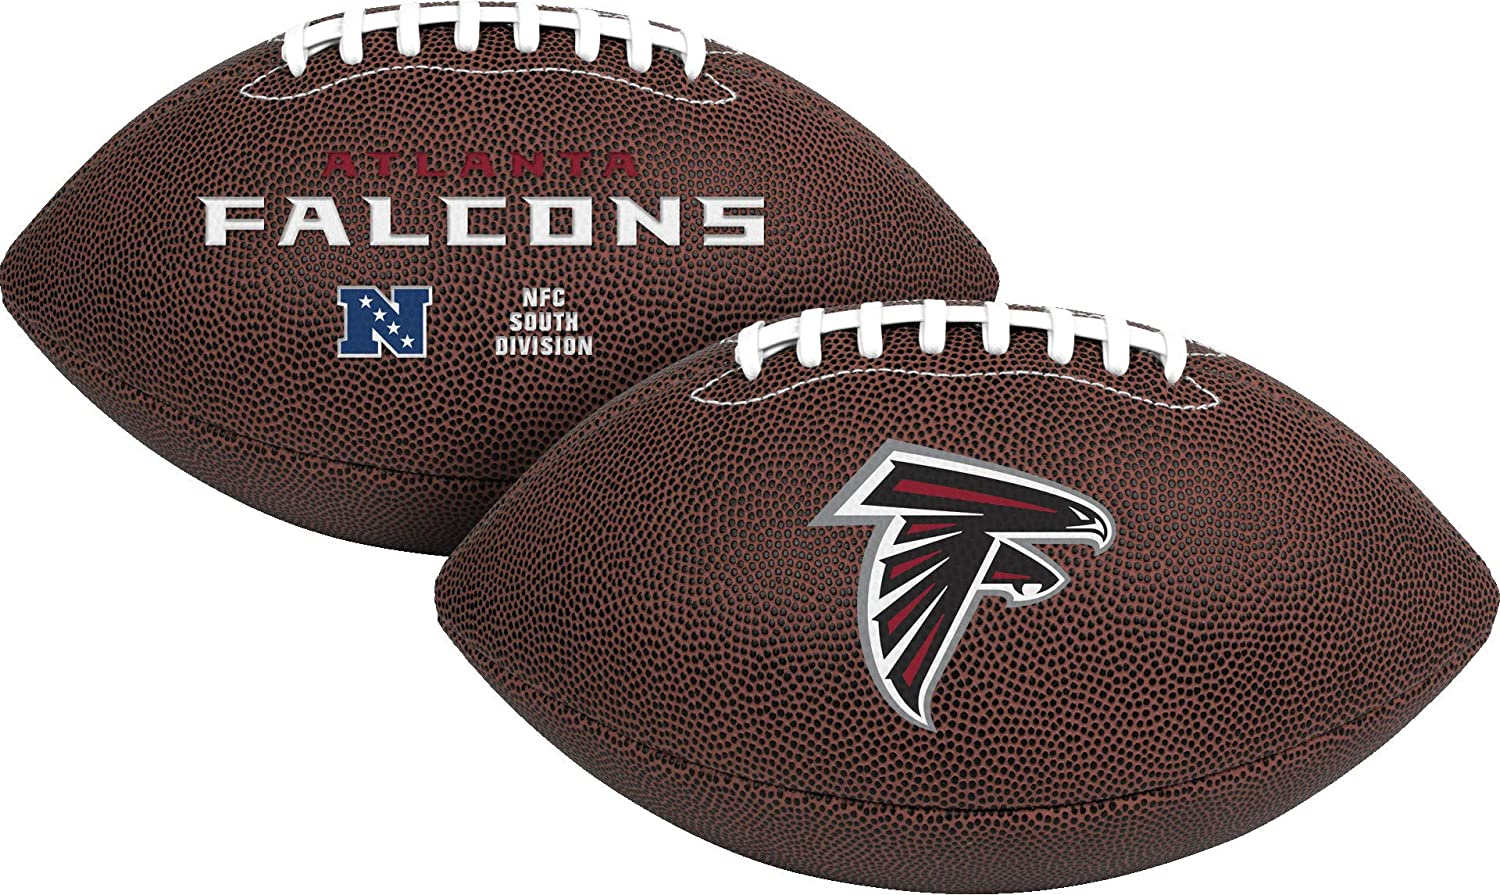 Rawlings Official NFL Air It Out Gametime Football, Youth Size, Atlanta Falcons